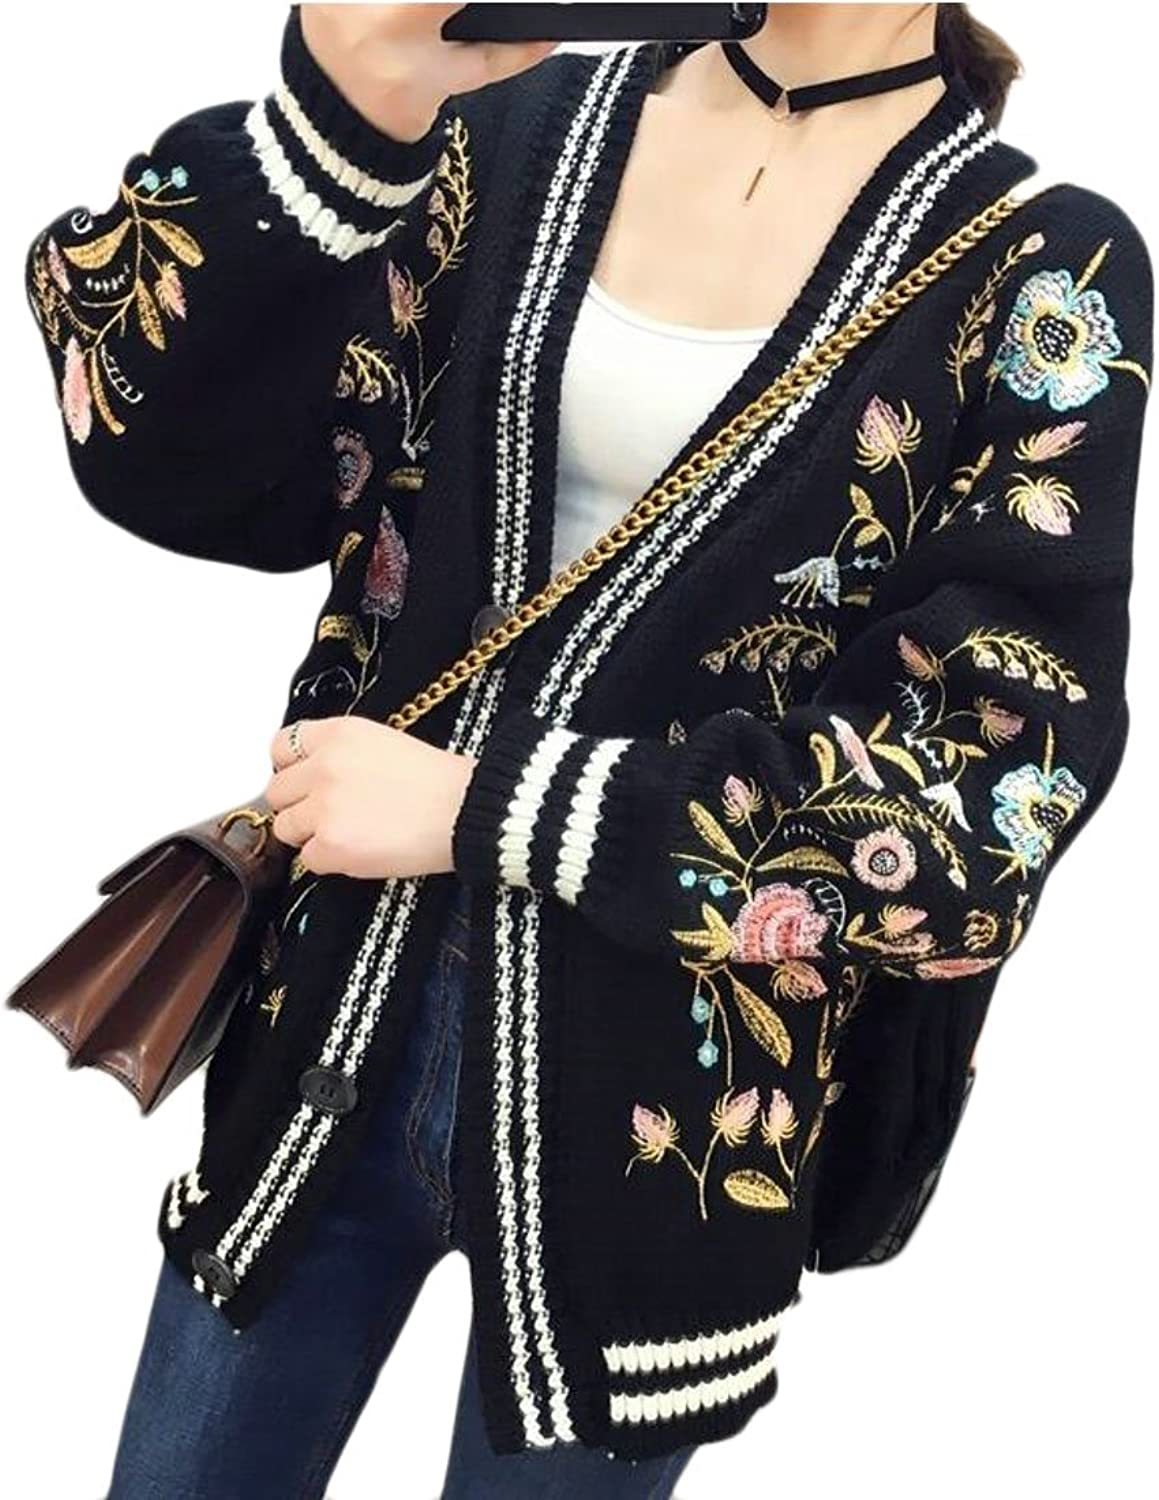 HTOOHTOOH Womens Autumn Winter Embroidery Ethnic Style Knitted Cardigan Sweaters